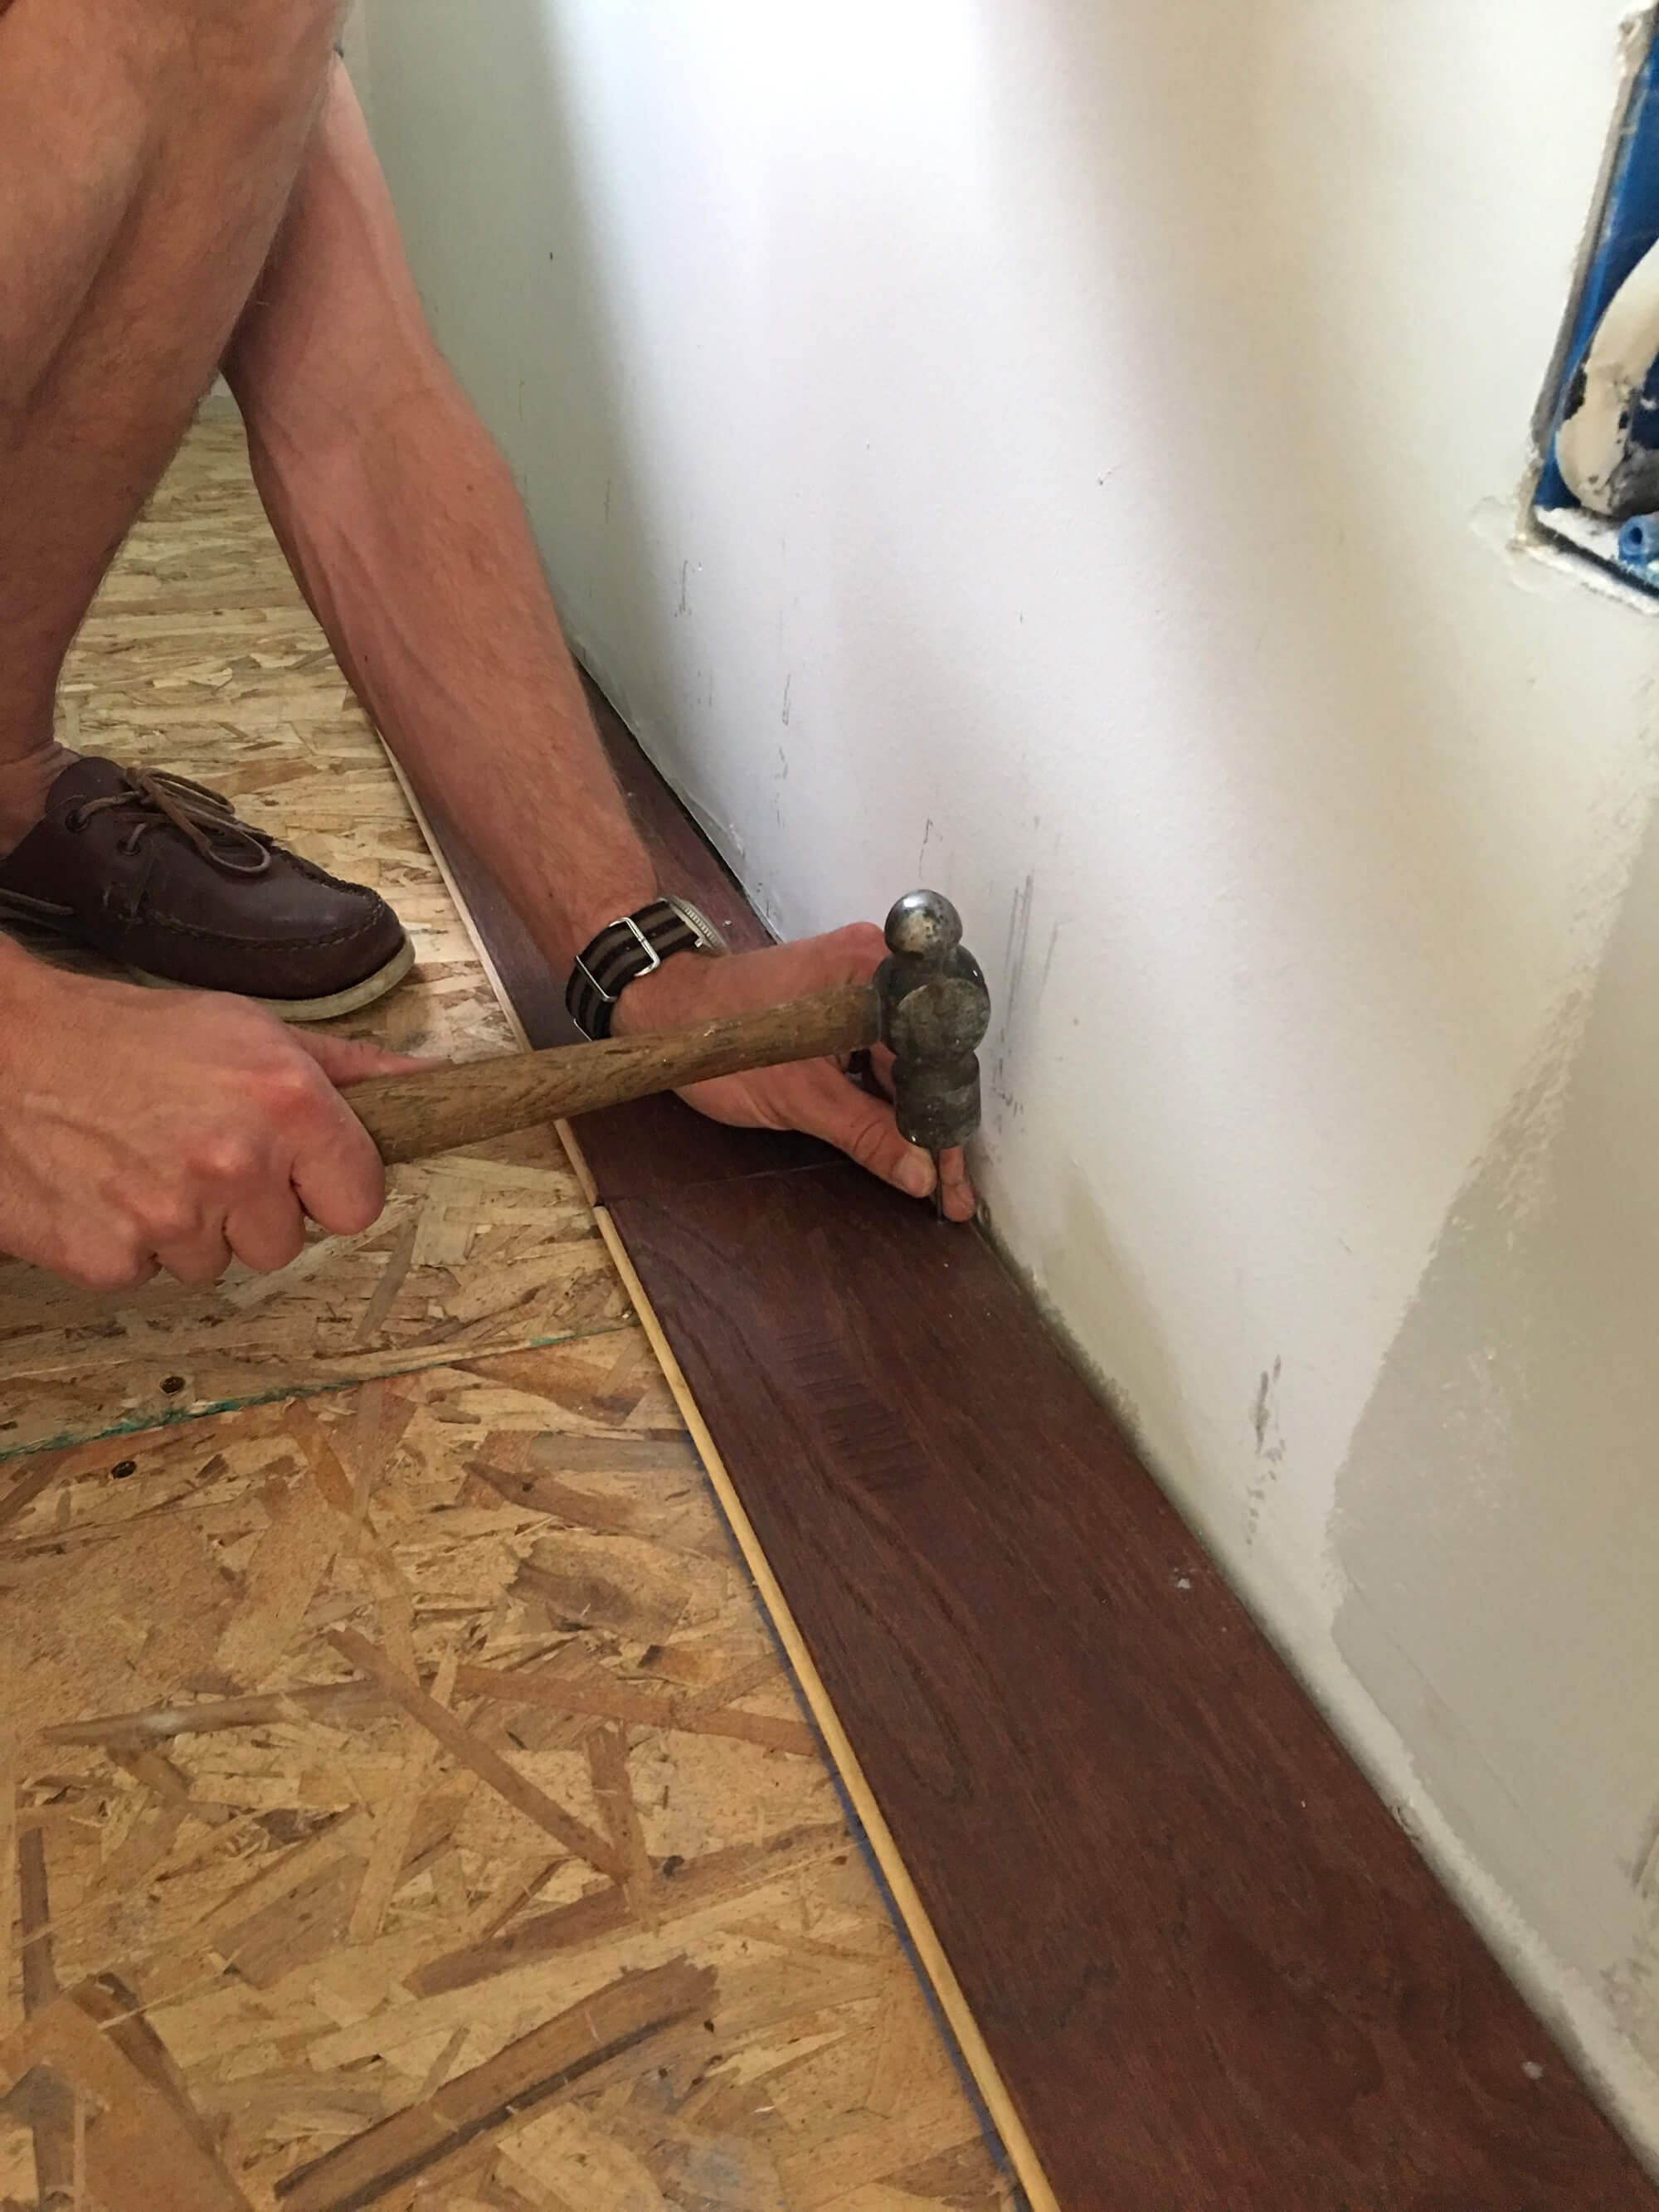 hardwood floor nailer hammer of the micro dwelling project part 5 flooring the daring gourmet pertaining to once the first row is installed the rest of the flooring can be secured using an air stapler you staple it every 4 6 inches along the floorboard and also